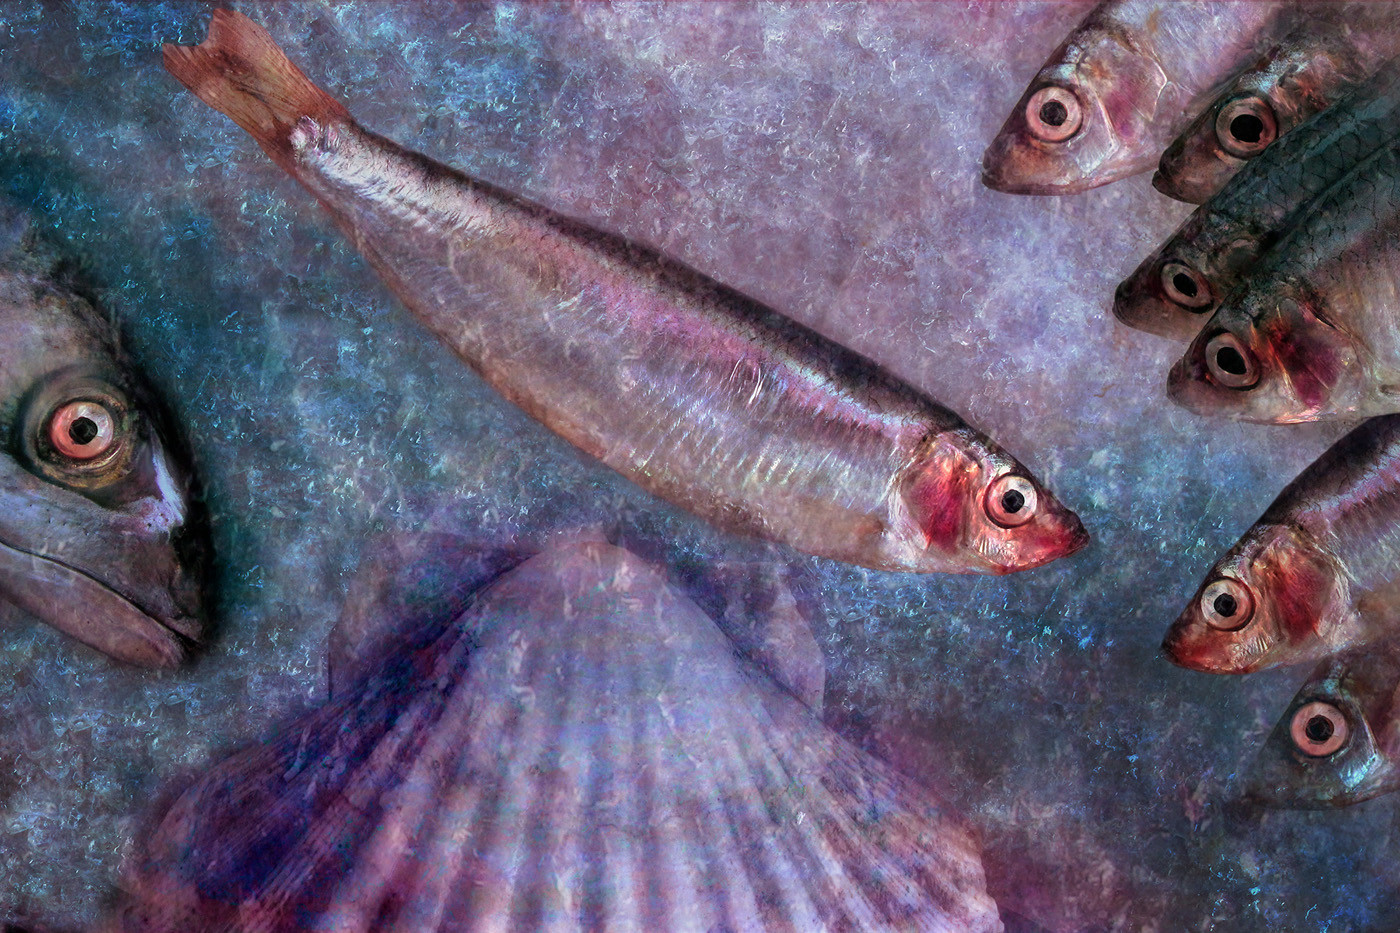 GROUP 1 20 FISH ON ICE by Pam Sherren